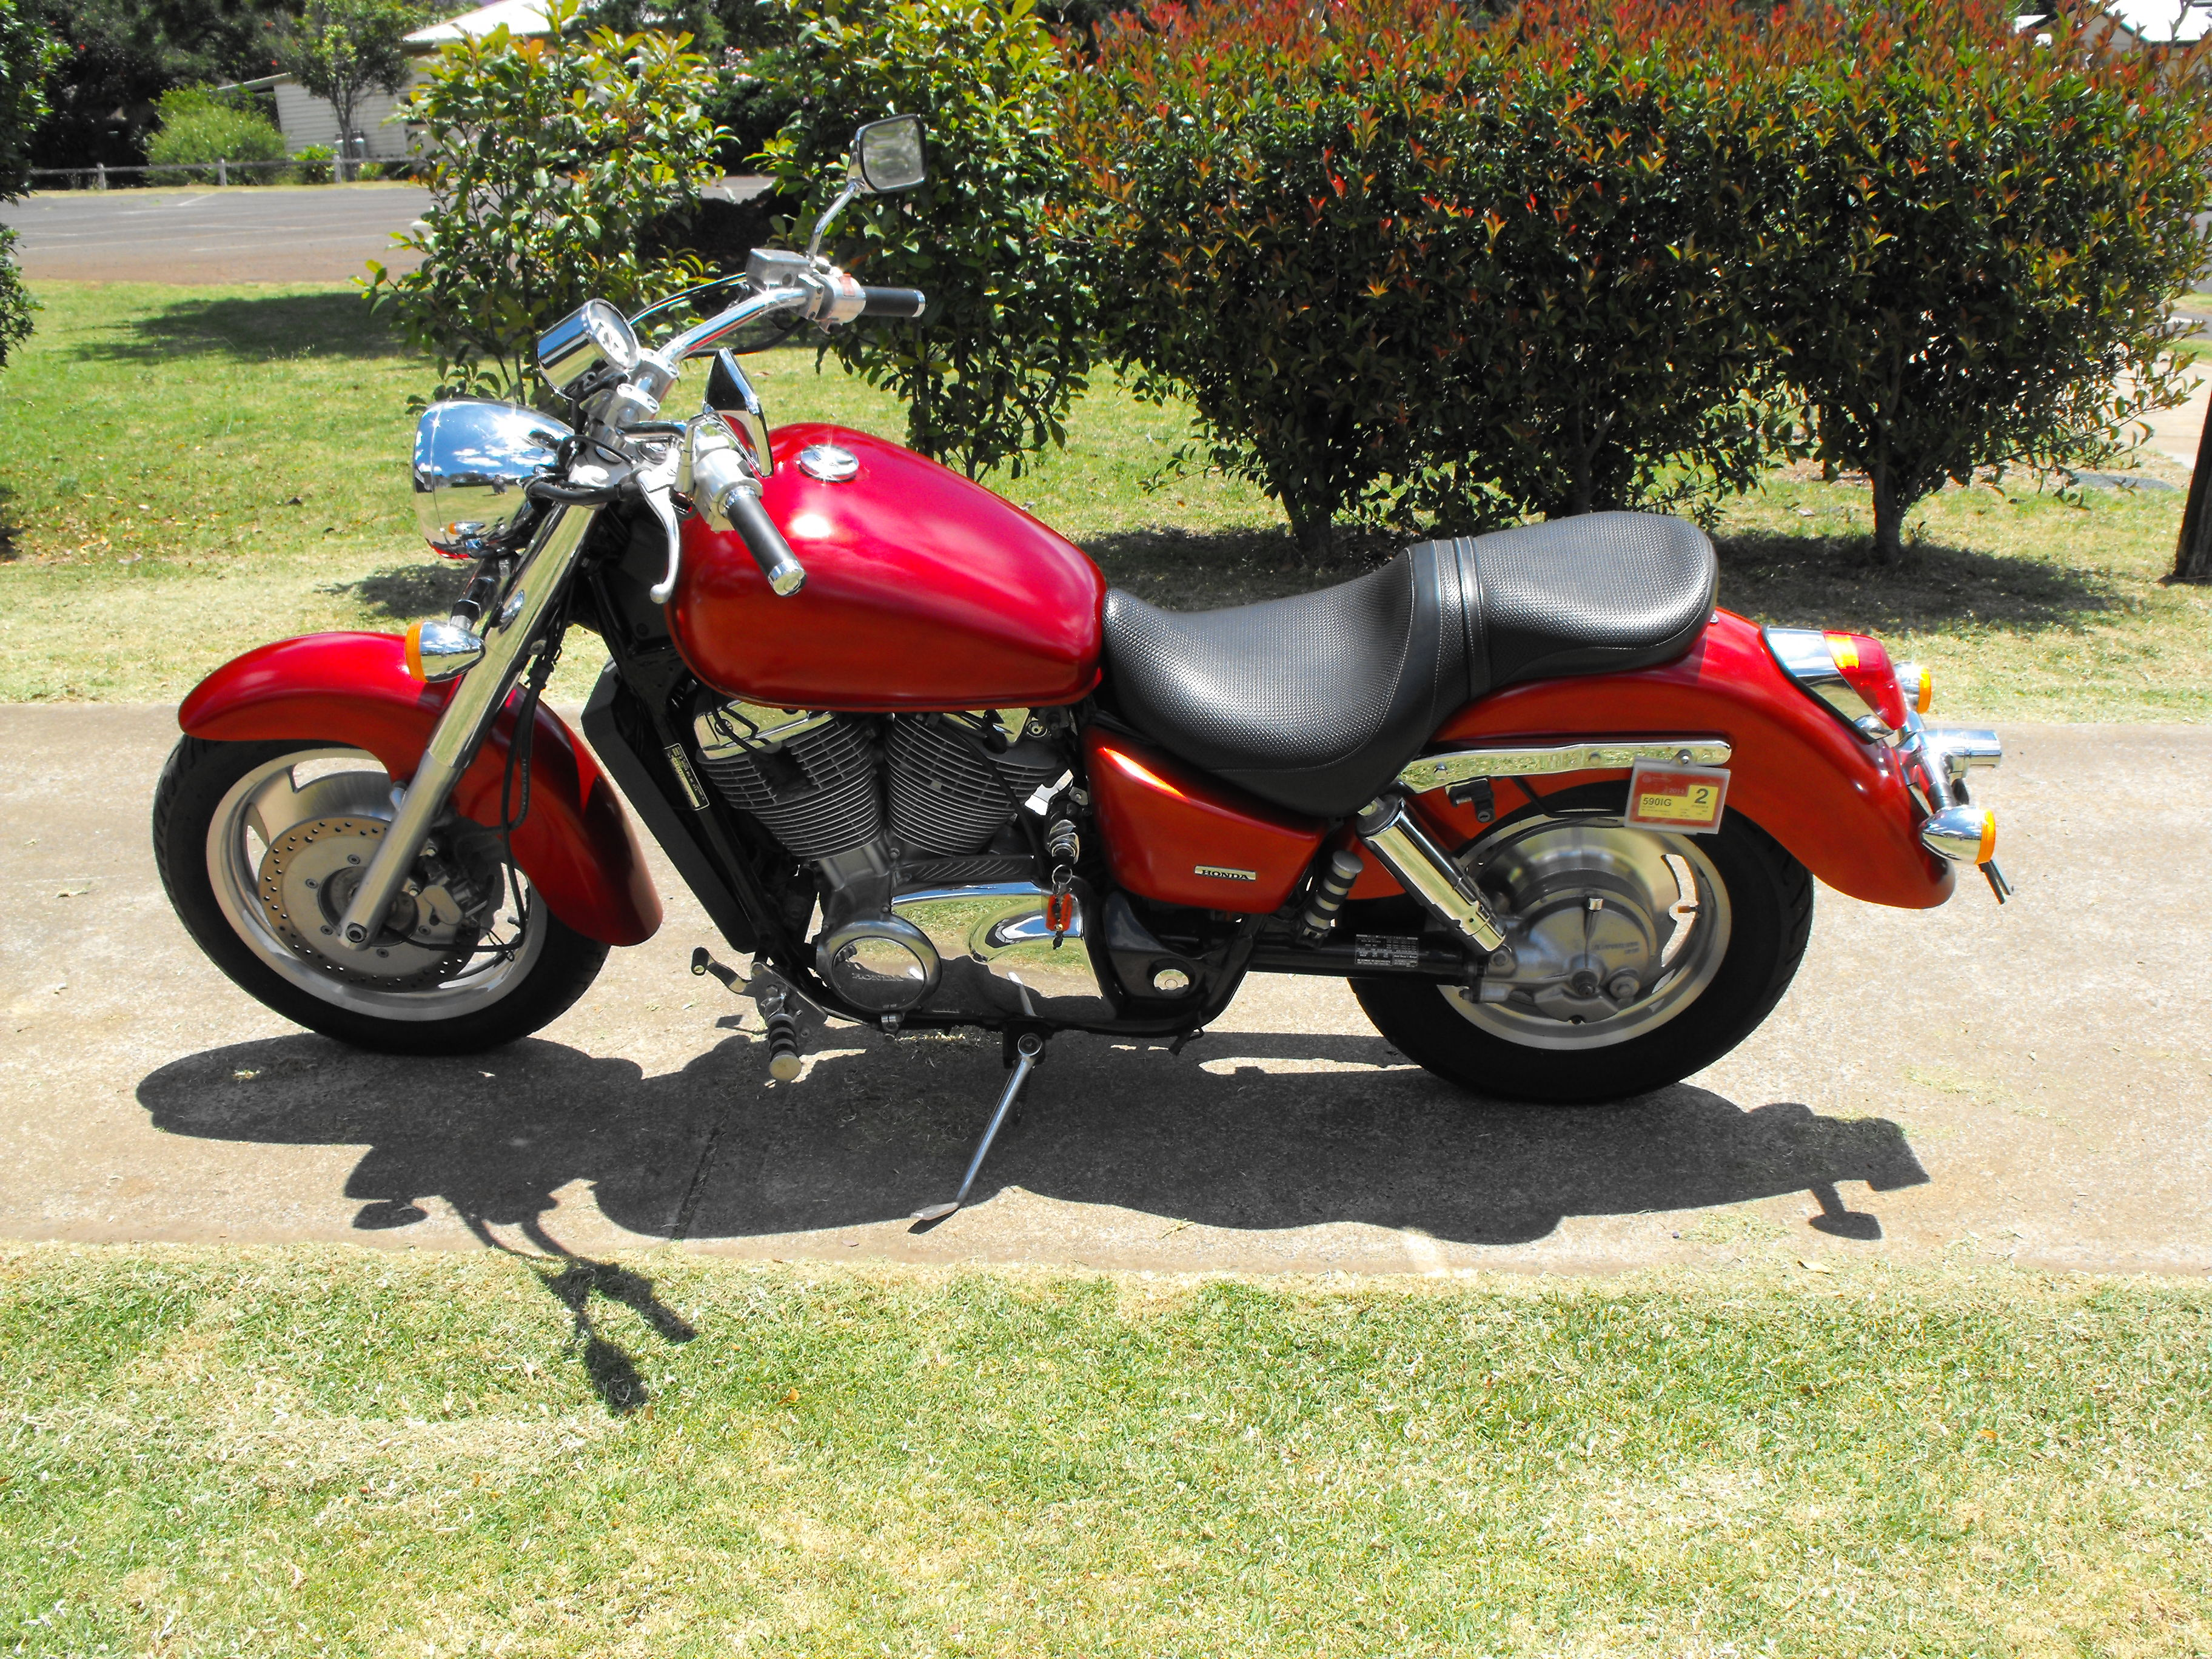 2003 Honda Vt1100 Shadow Sabre Bike Sales Qld Darling